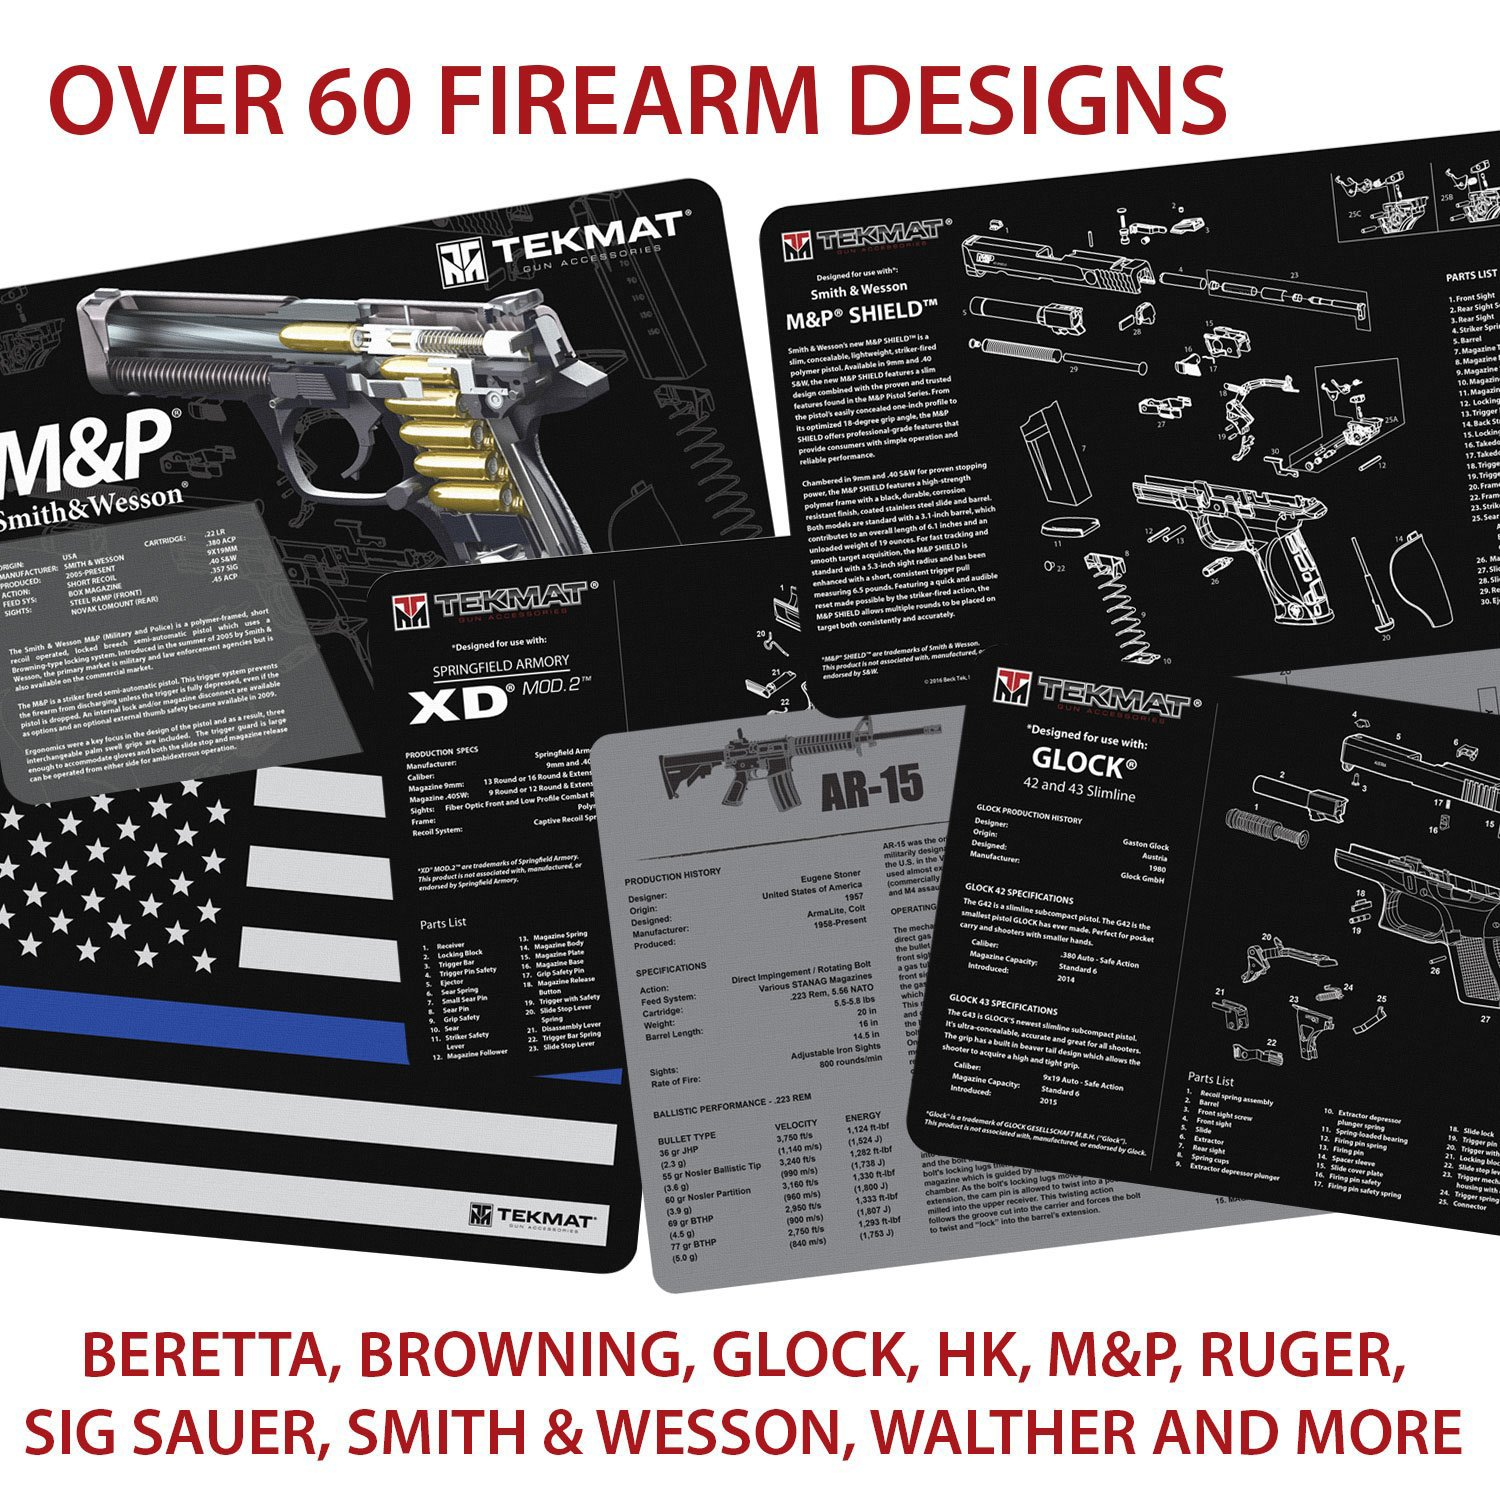 Tekmat Springfield Armory Xd Cleaning Mat 11 X 17 1911 Magazine Diagram Free Download Wiring Diagrams Pictures Thick Durable Waterproof Handgun With Parts And Instructions